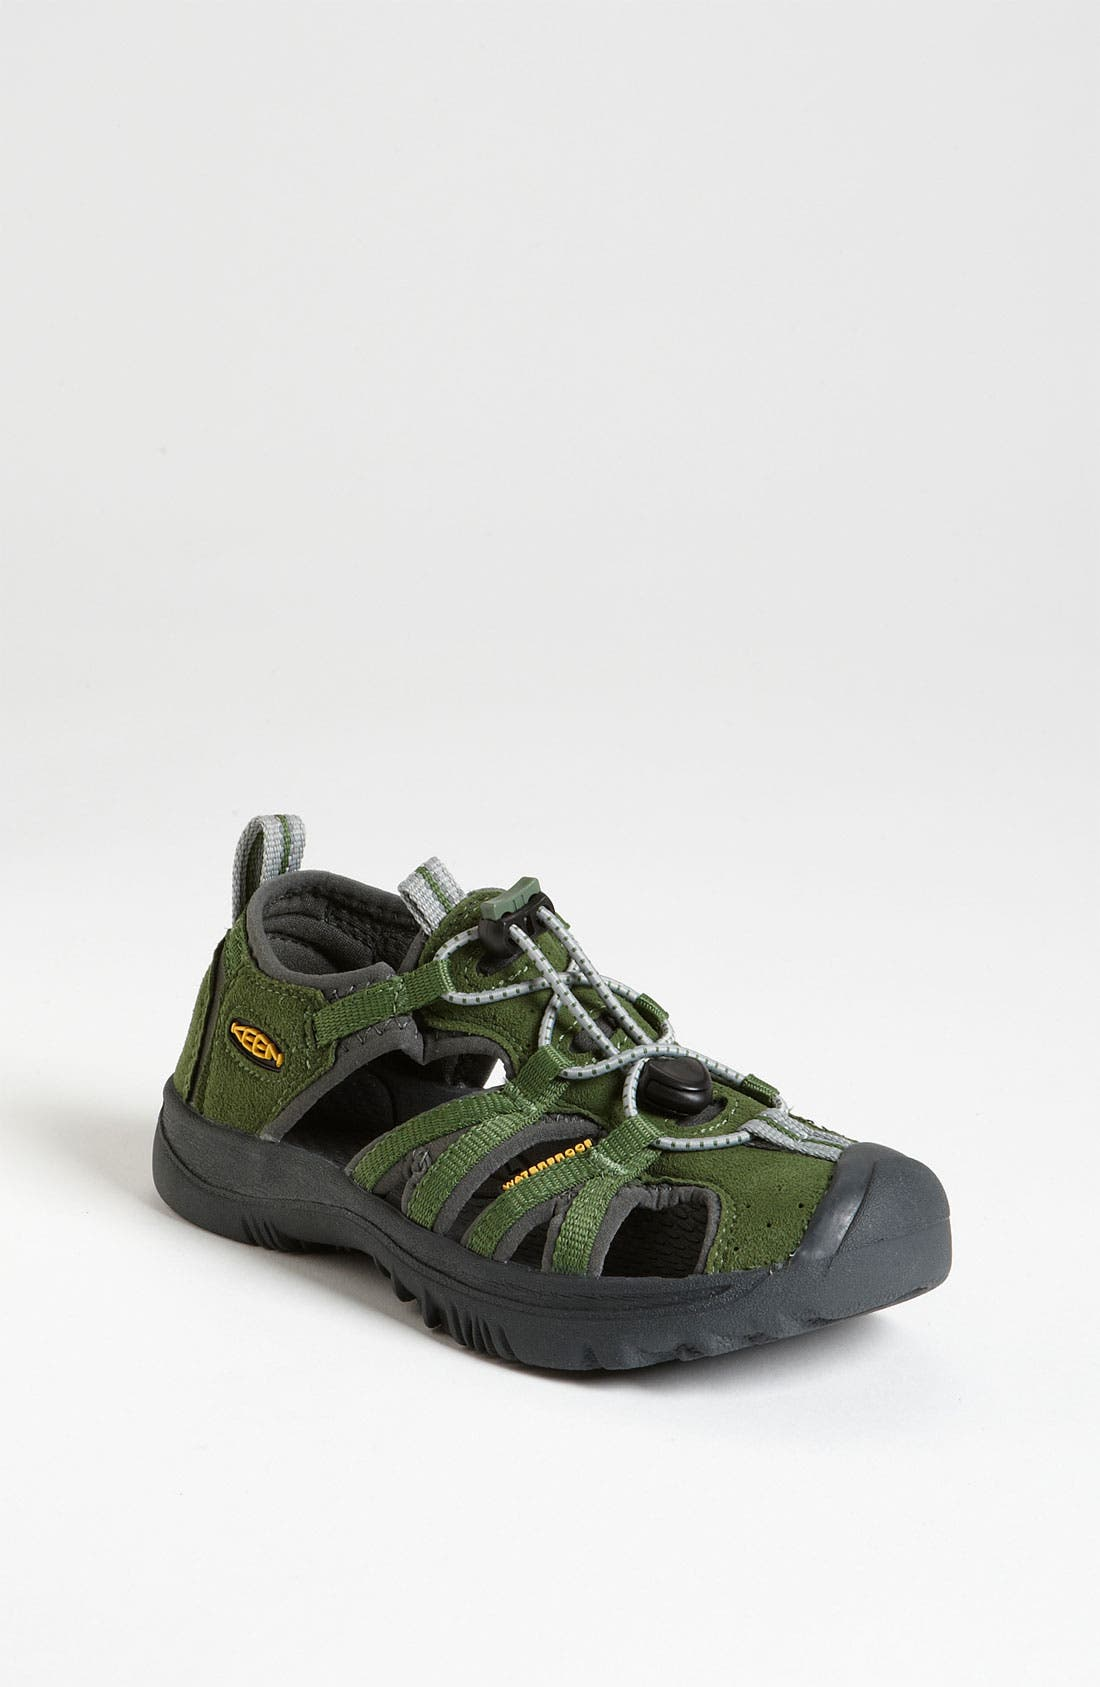 Main Image - Keen 'Kanyon' Sandal (Toddler, Little Kid & Big Kid)